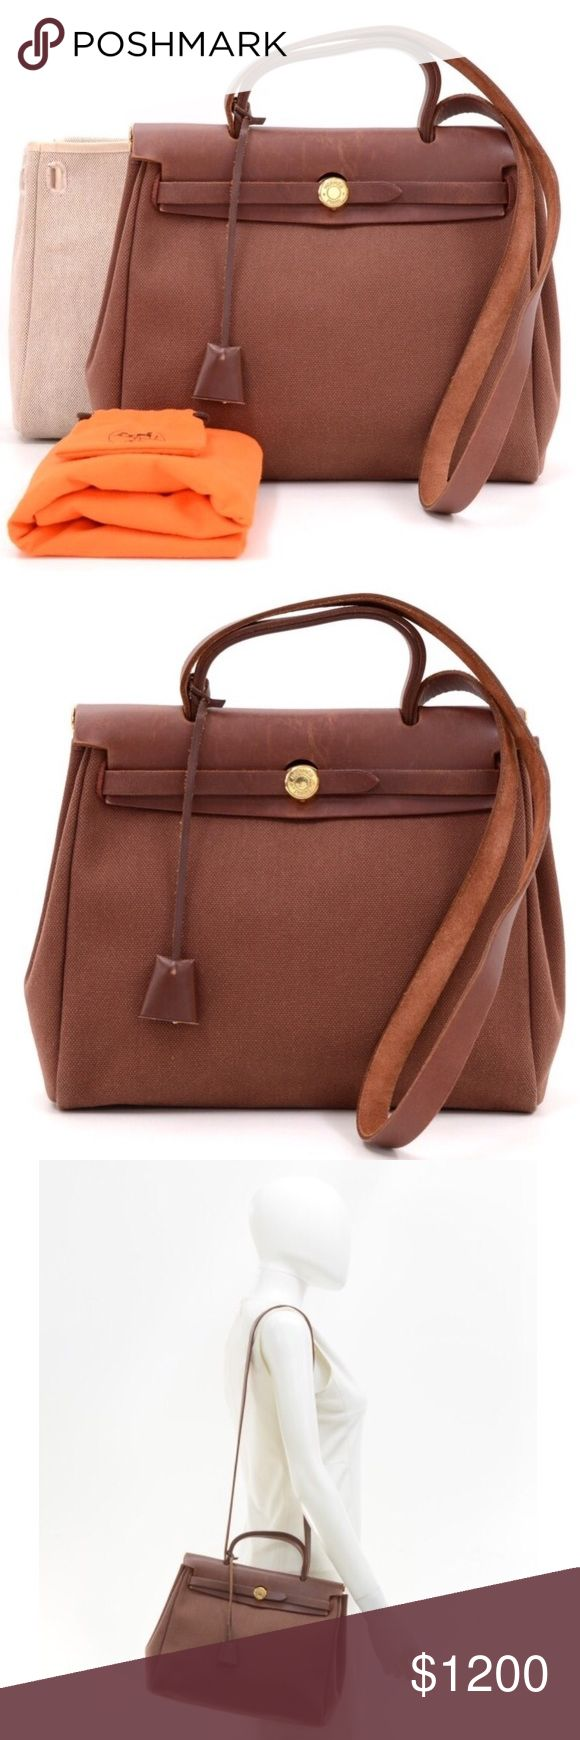 """Authentic Hermes Herbag PM 2 in 1 Two canvas bags: brown and beige. 11.8x9.1x4.7 & 11.8""""x9.8x4.7. Made in France. E stamp (2001). Gold hardware. Minor signs of use on leather, small stain inside beige bag. Dust bag, padlock, 2 keys included. Overall excellent condition. Hermes Bags Shoulder Bags"""